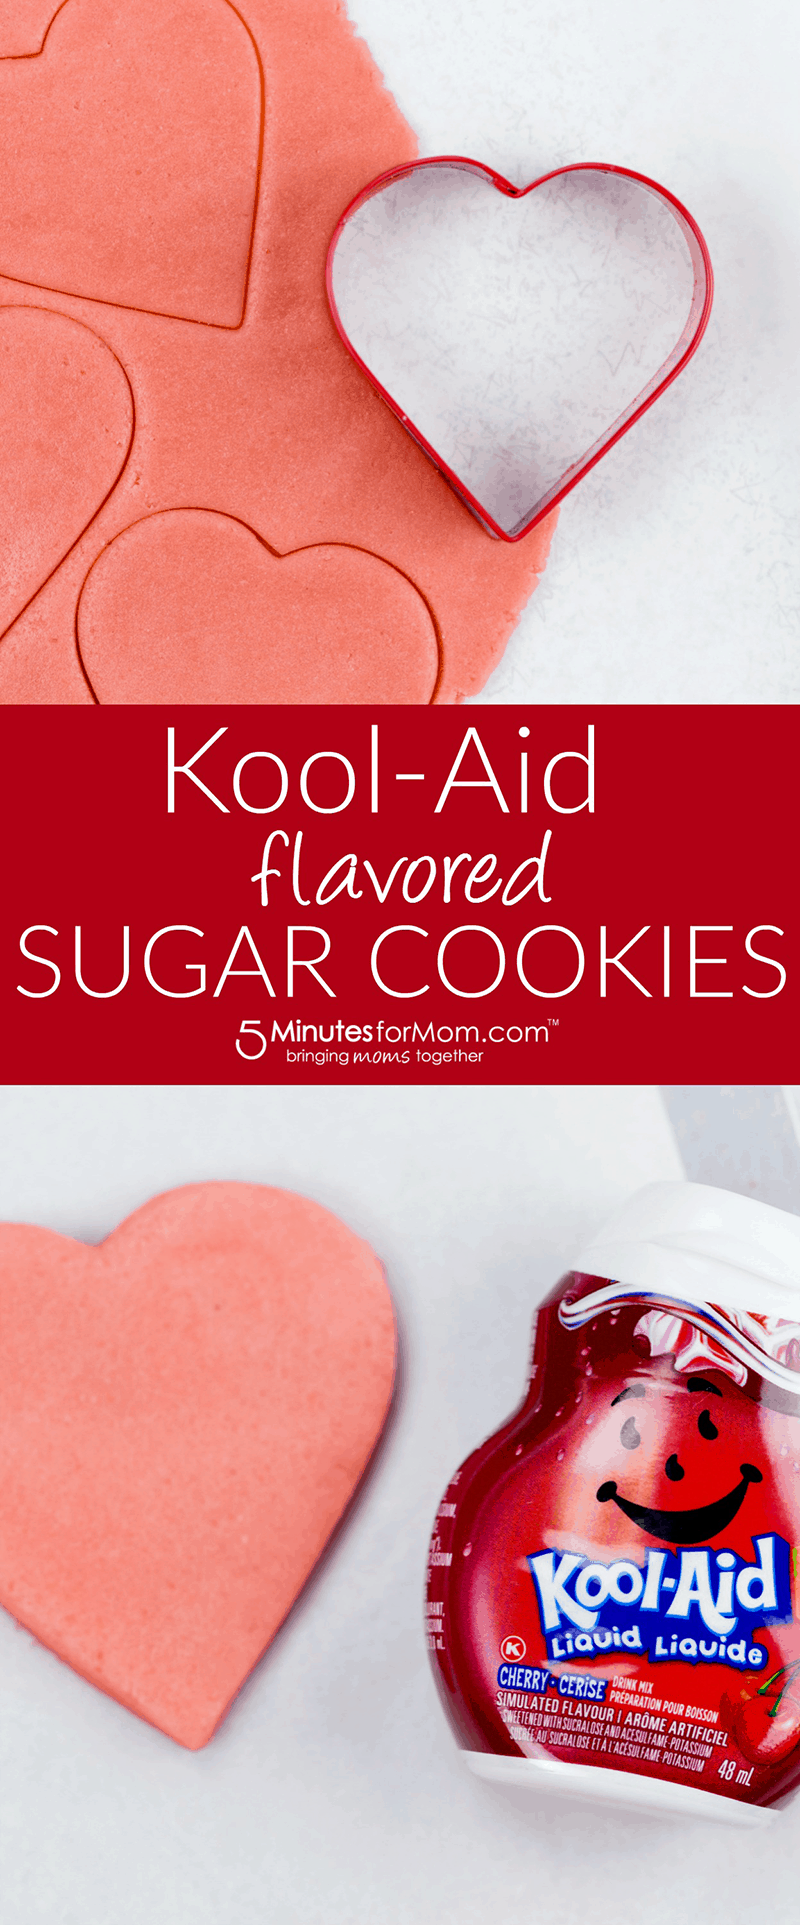 Kool-Aid Sugar Cookies